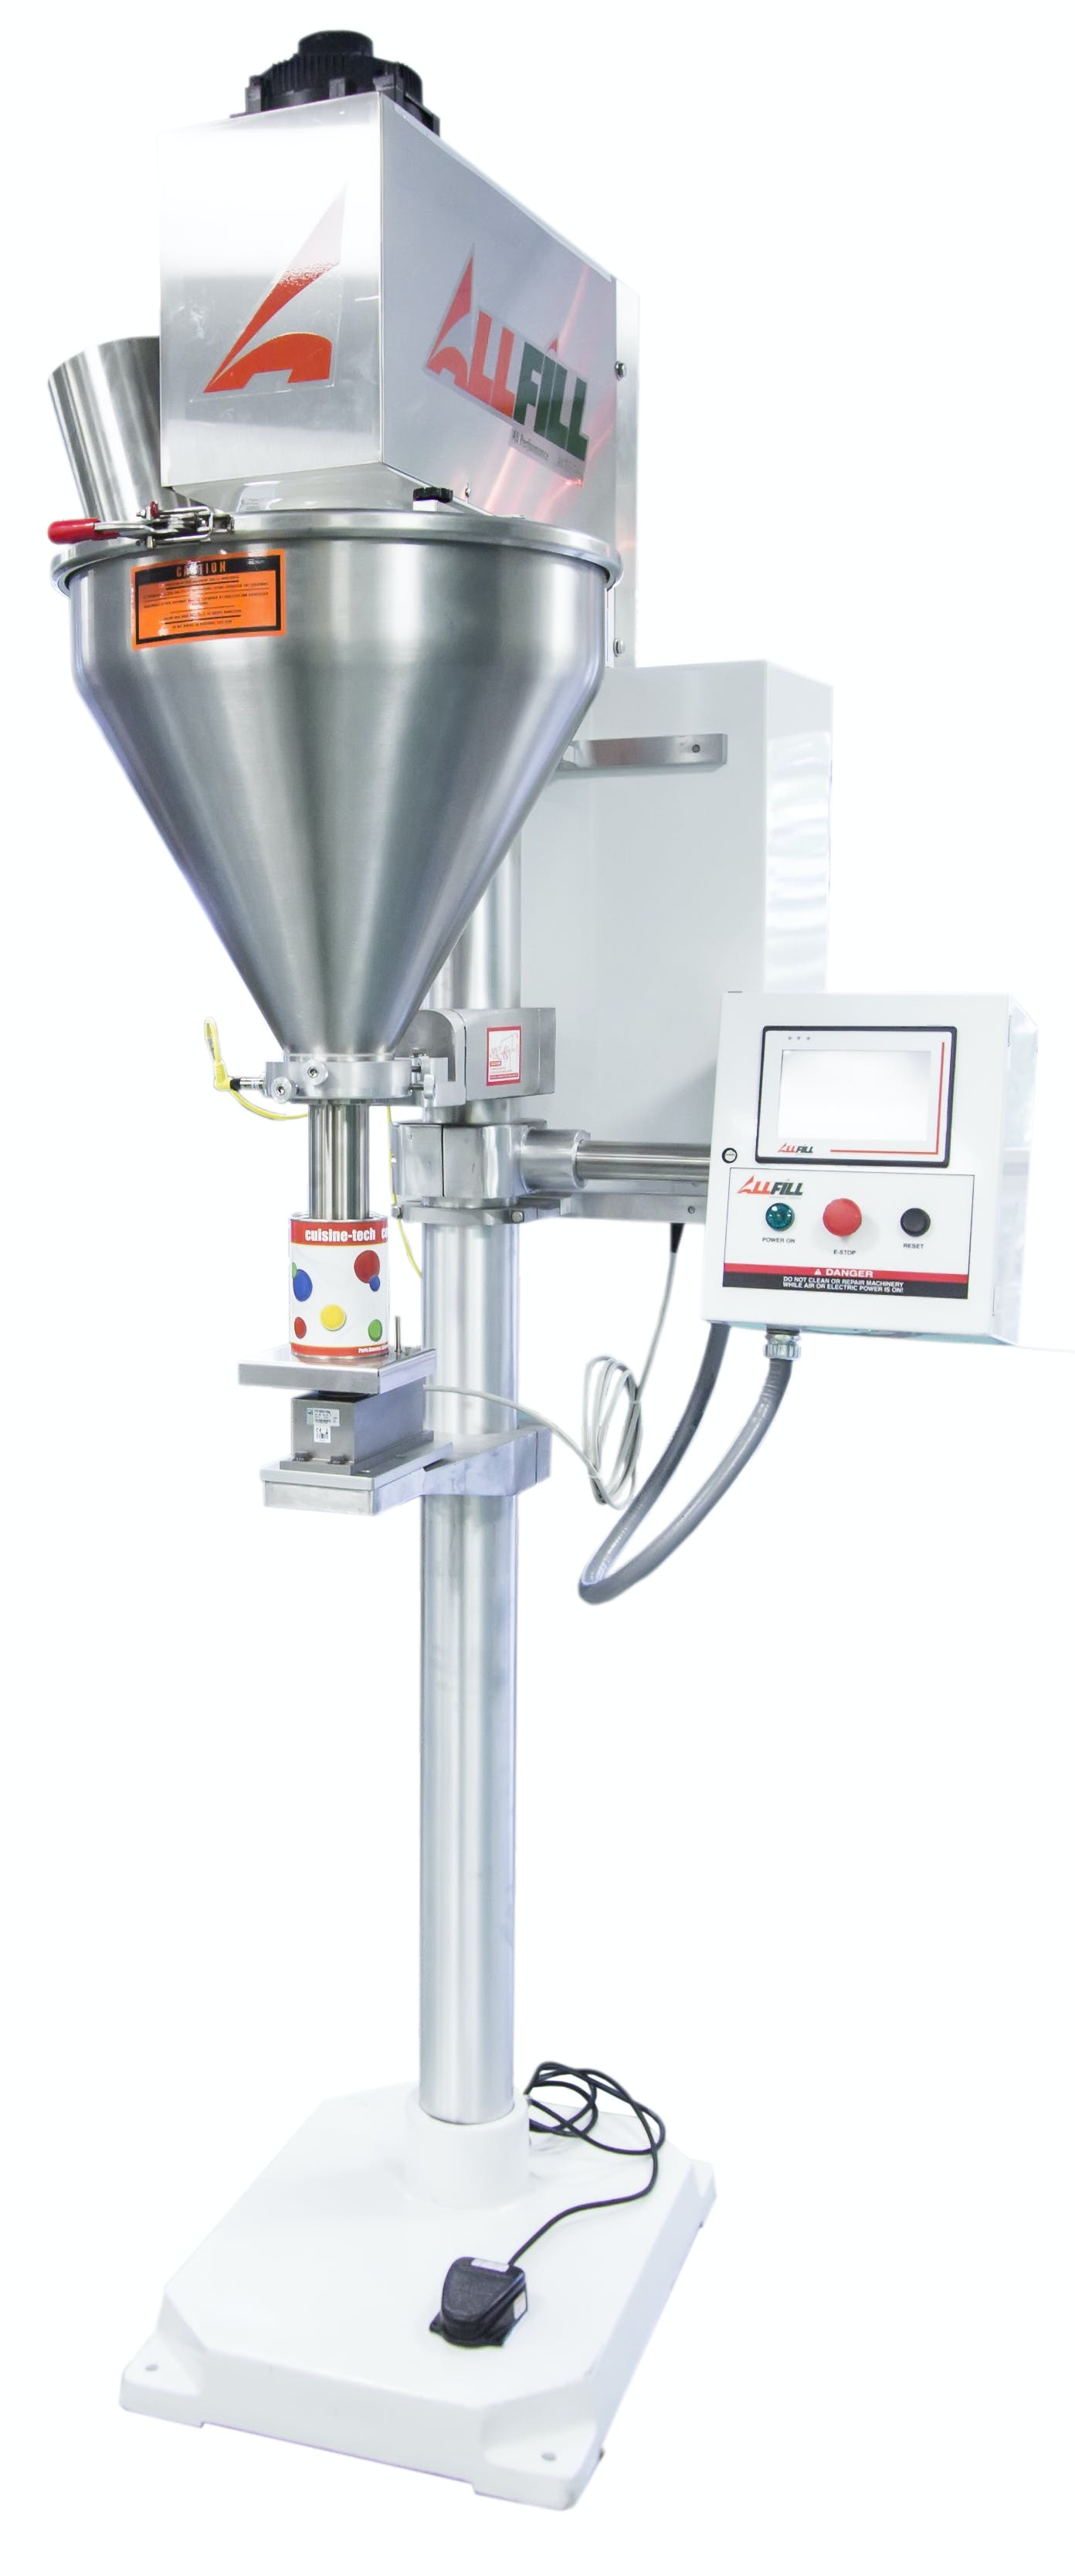 Model B-SV-600 Auger filler sold by All-Fill